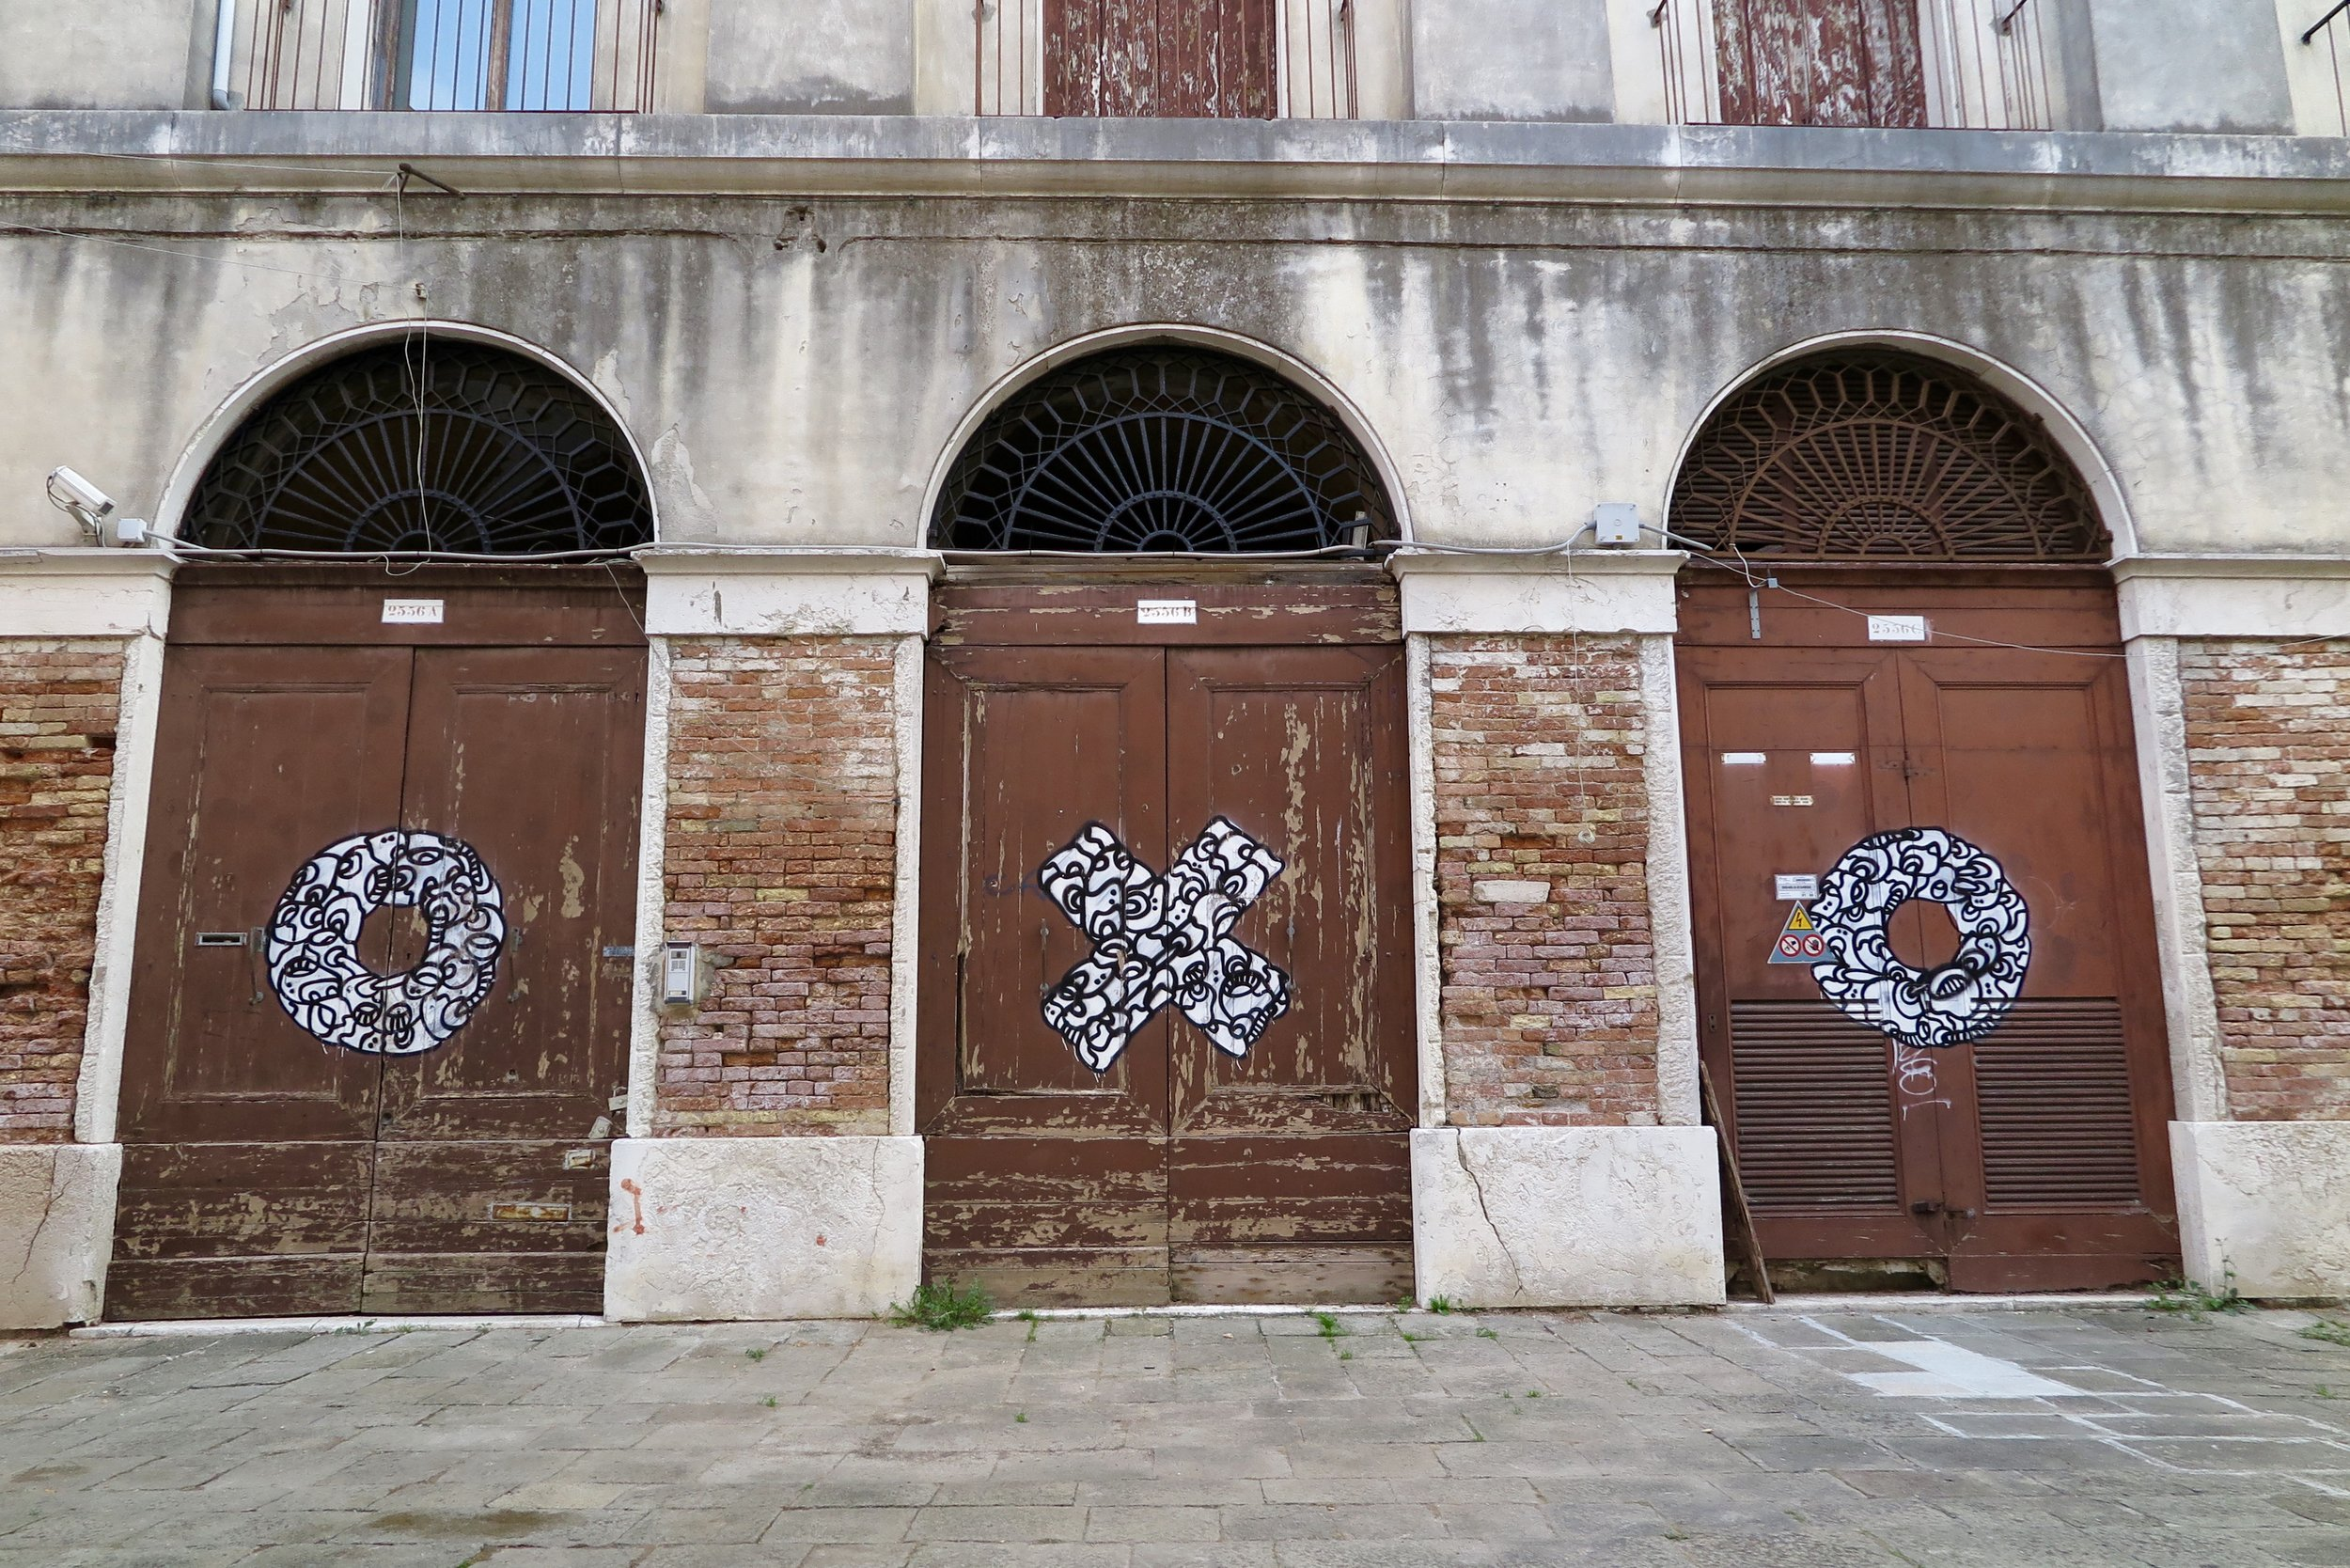 Graffiti in Venice, Italy, Samantha McNeil